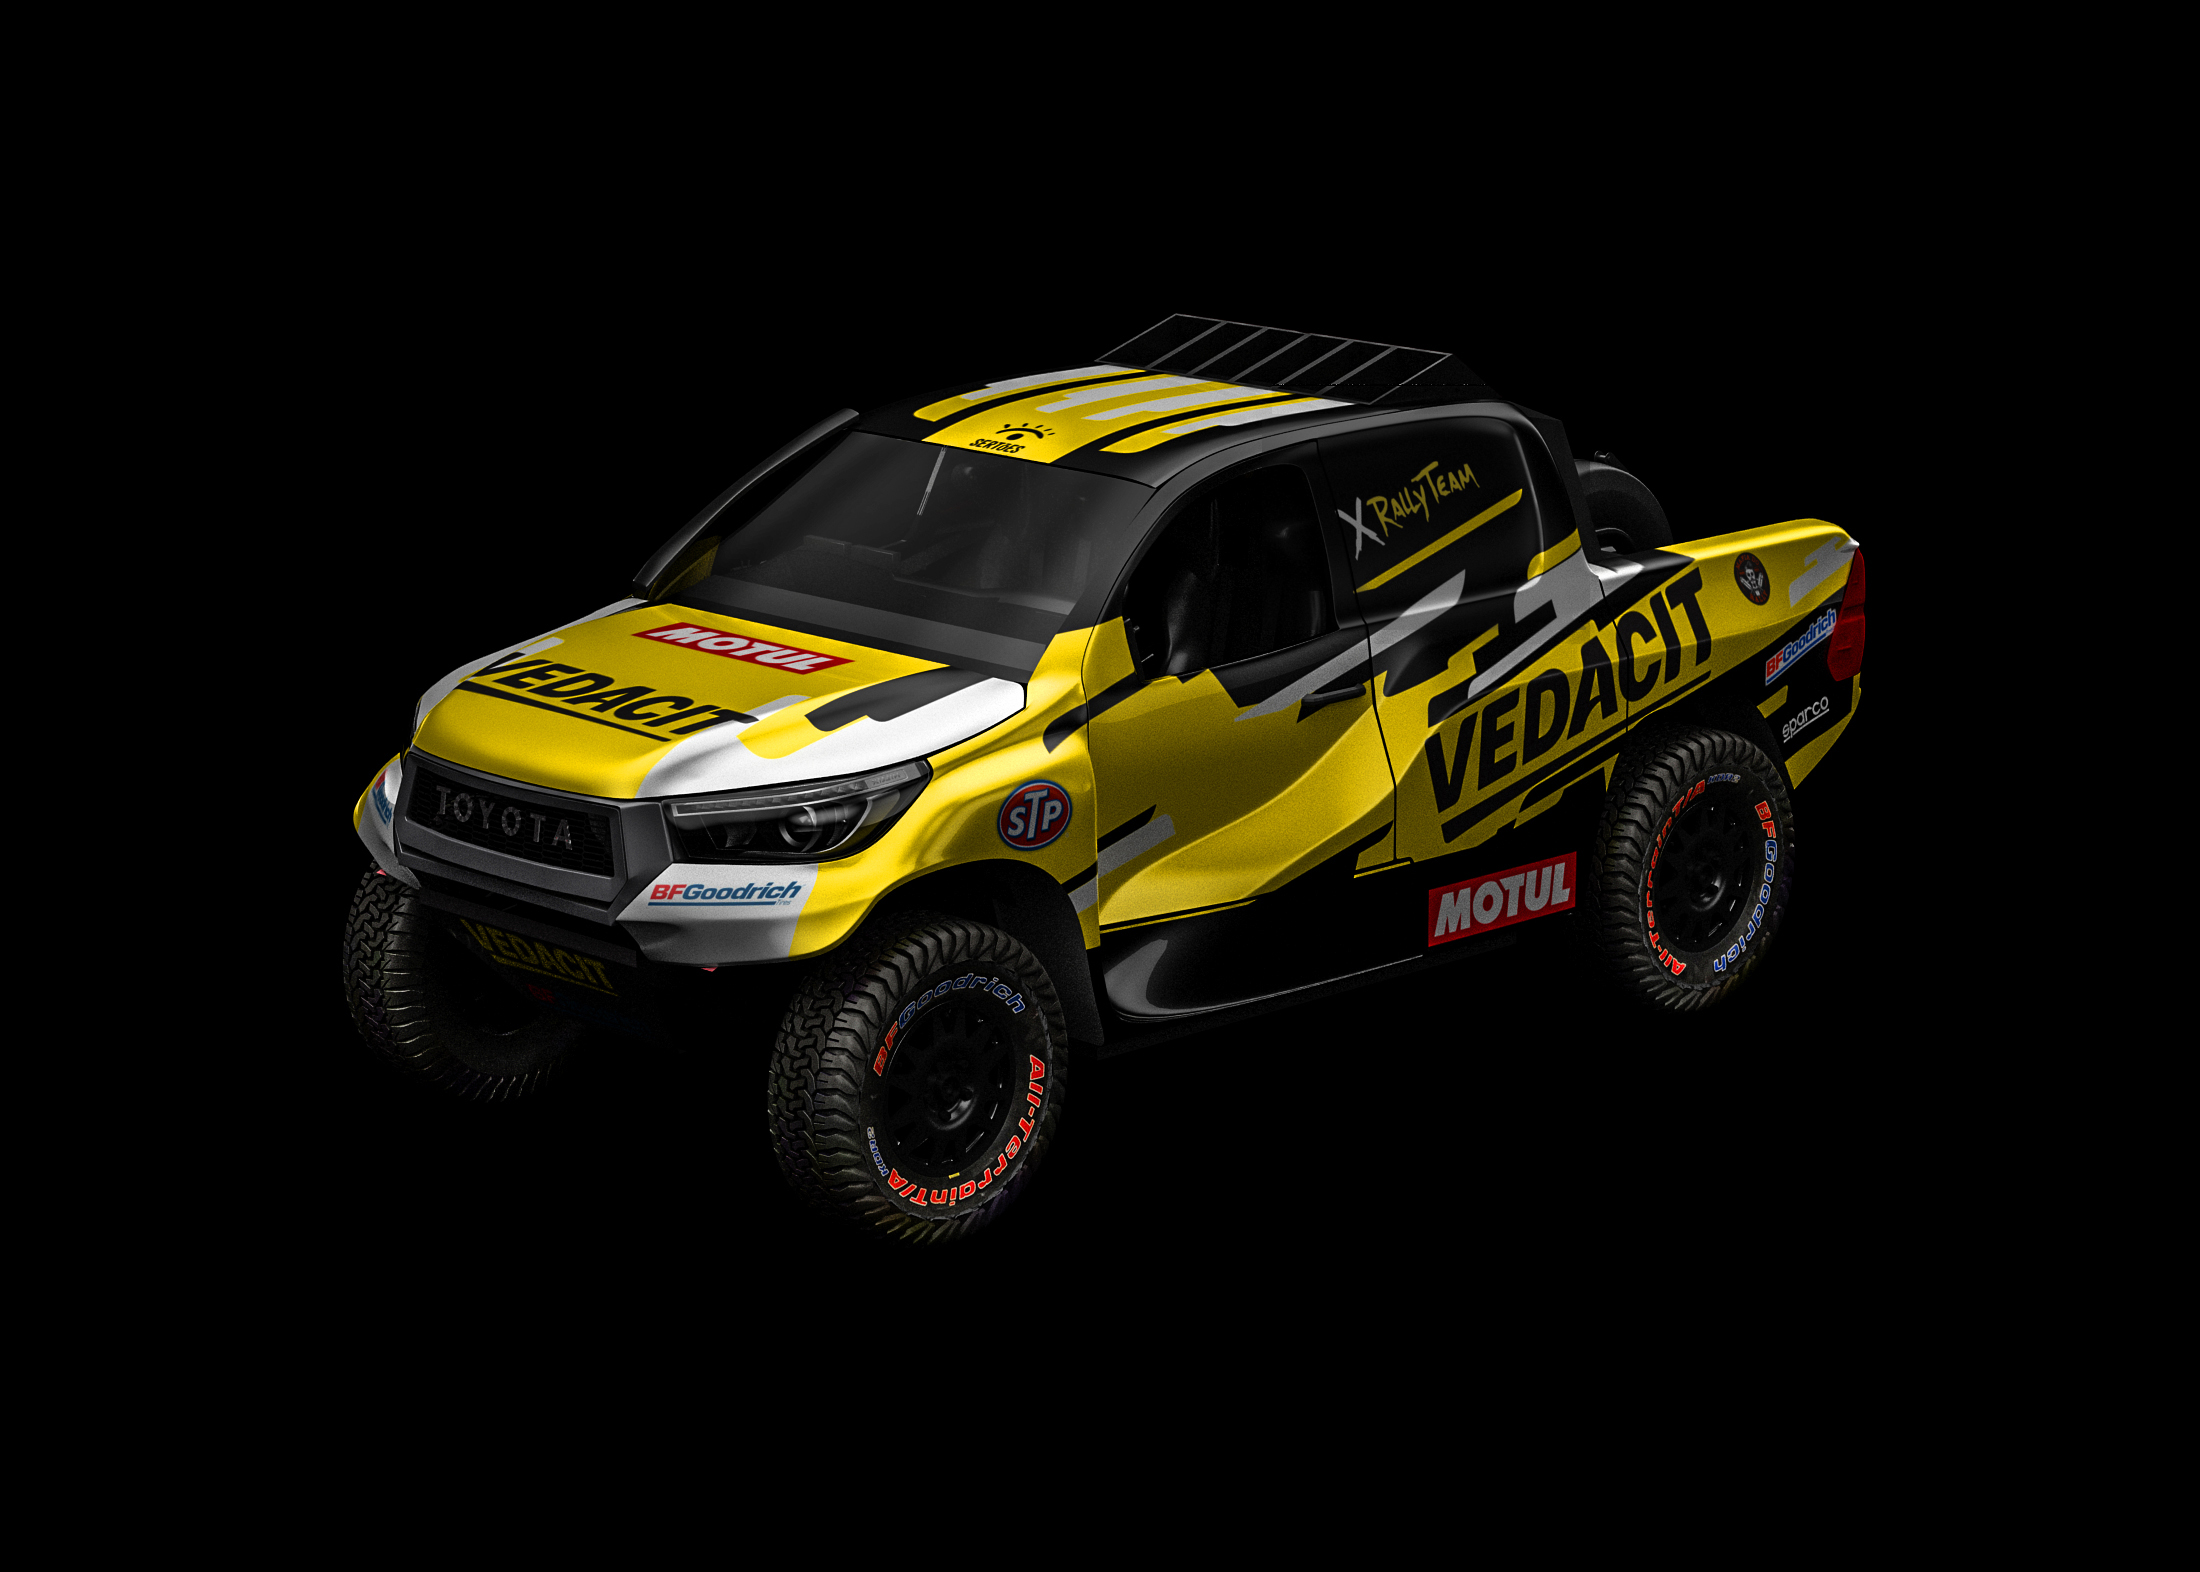 X Rally Team to run Overdrive Toyota Hilux in the Sertões